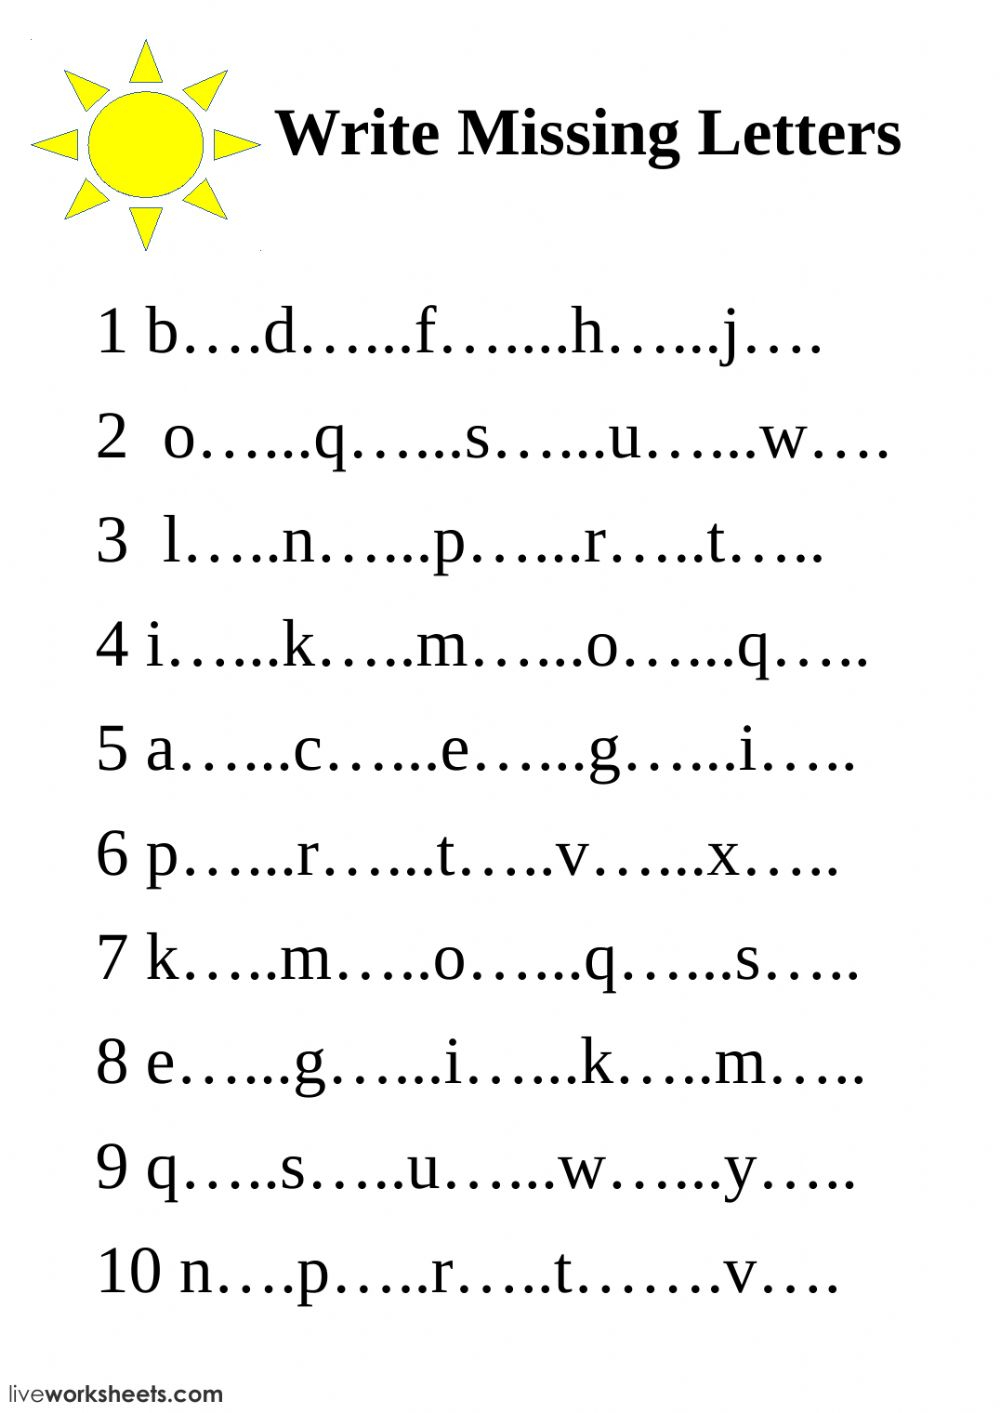 Write Missing Letters - Interactive Worksheet pertaining to Alphabet Worksheets For Grade 1